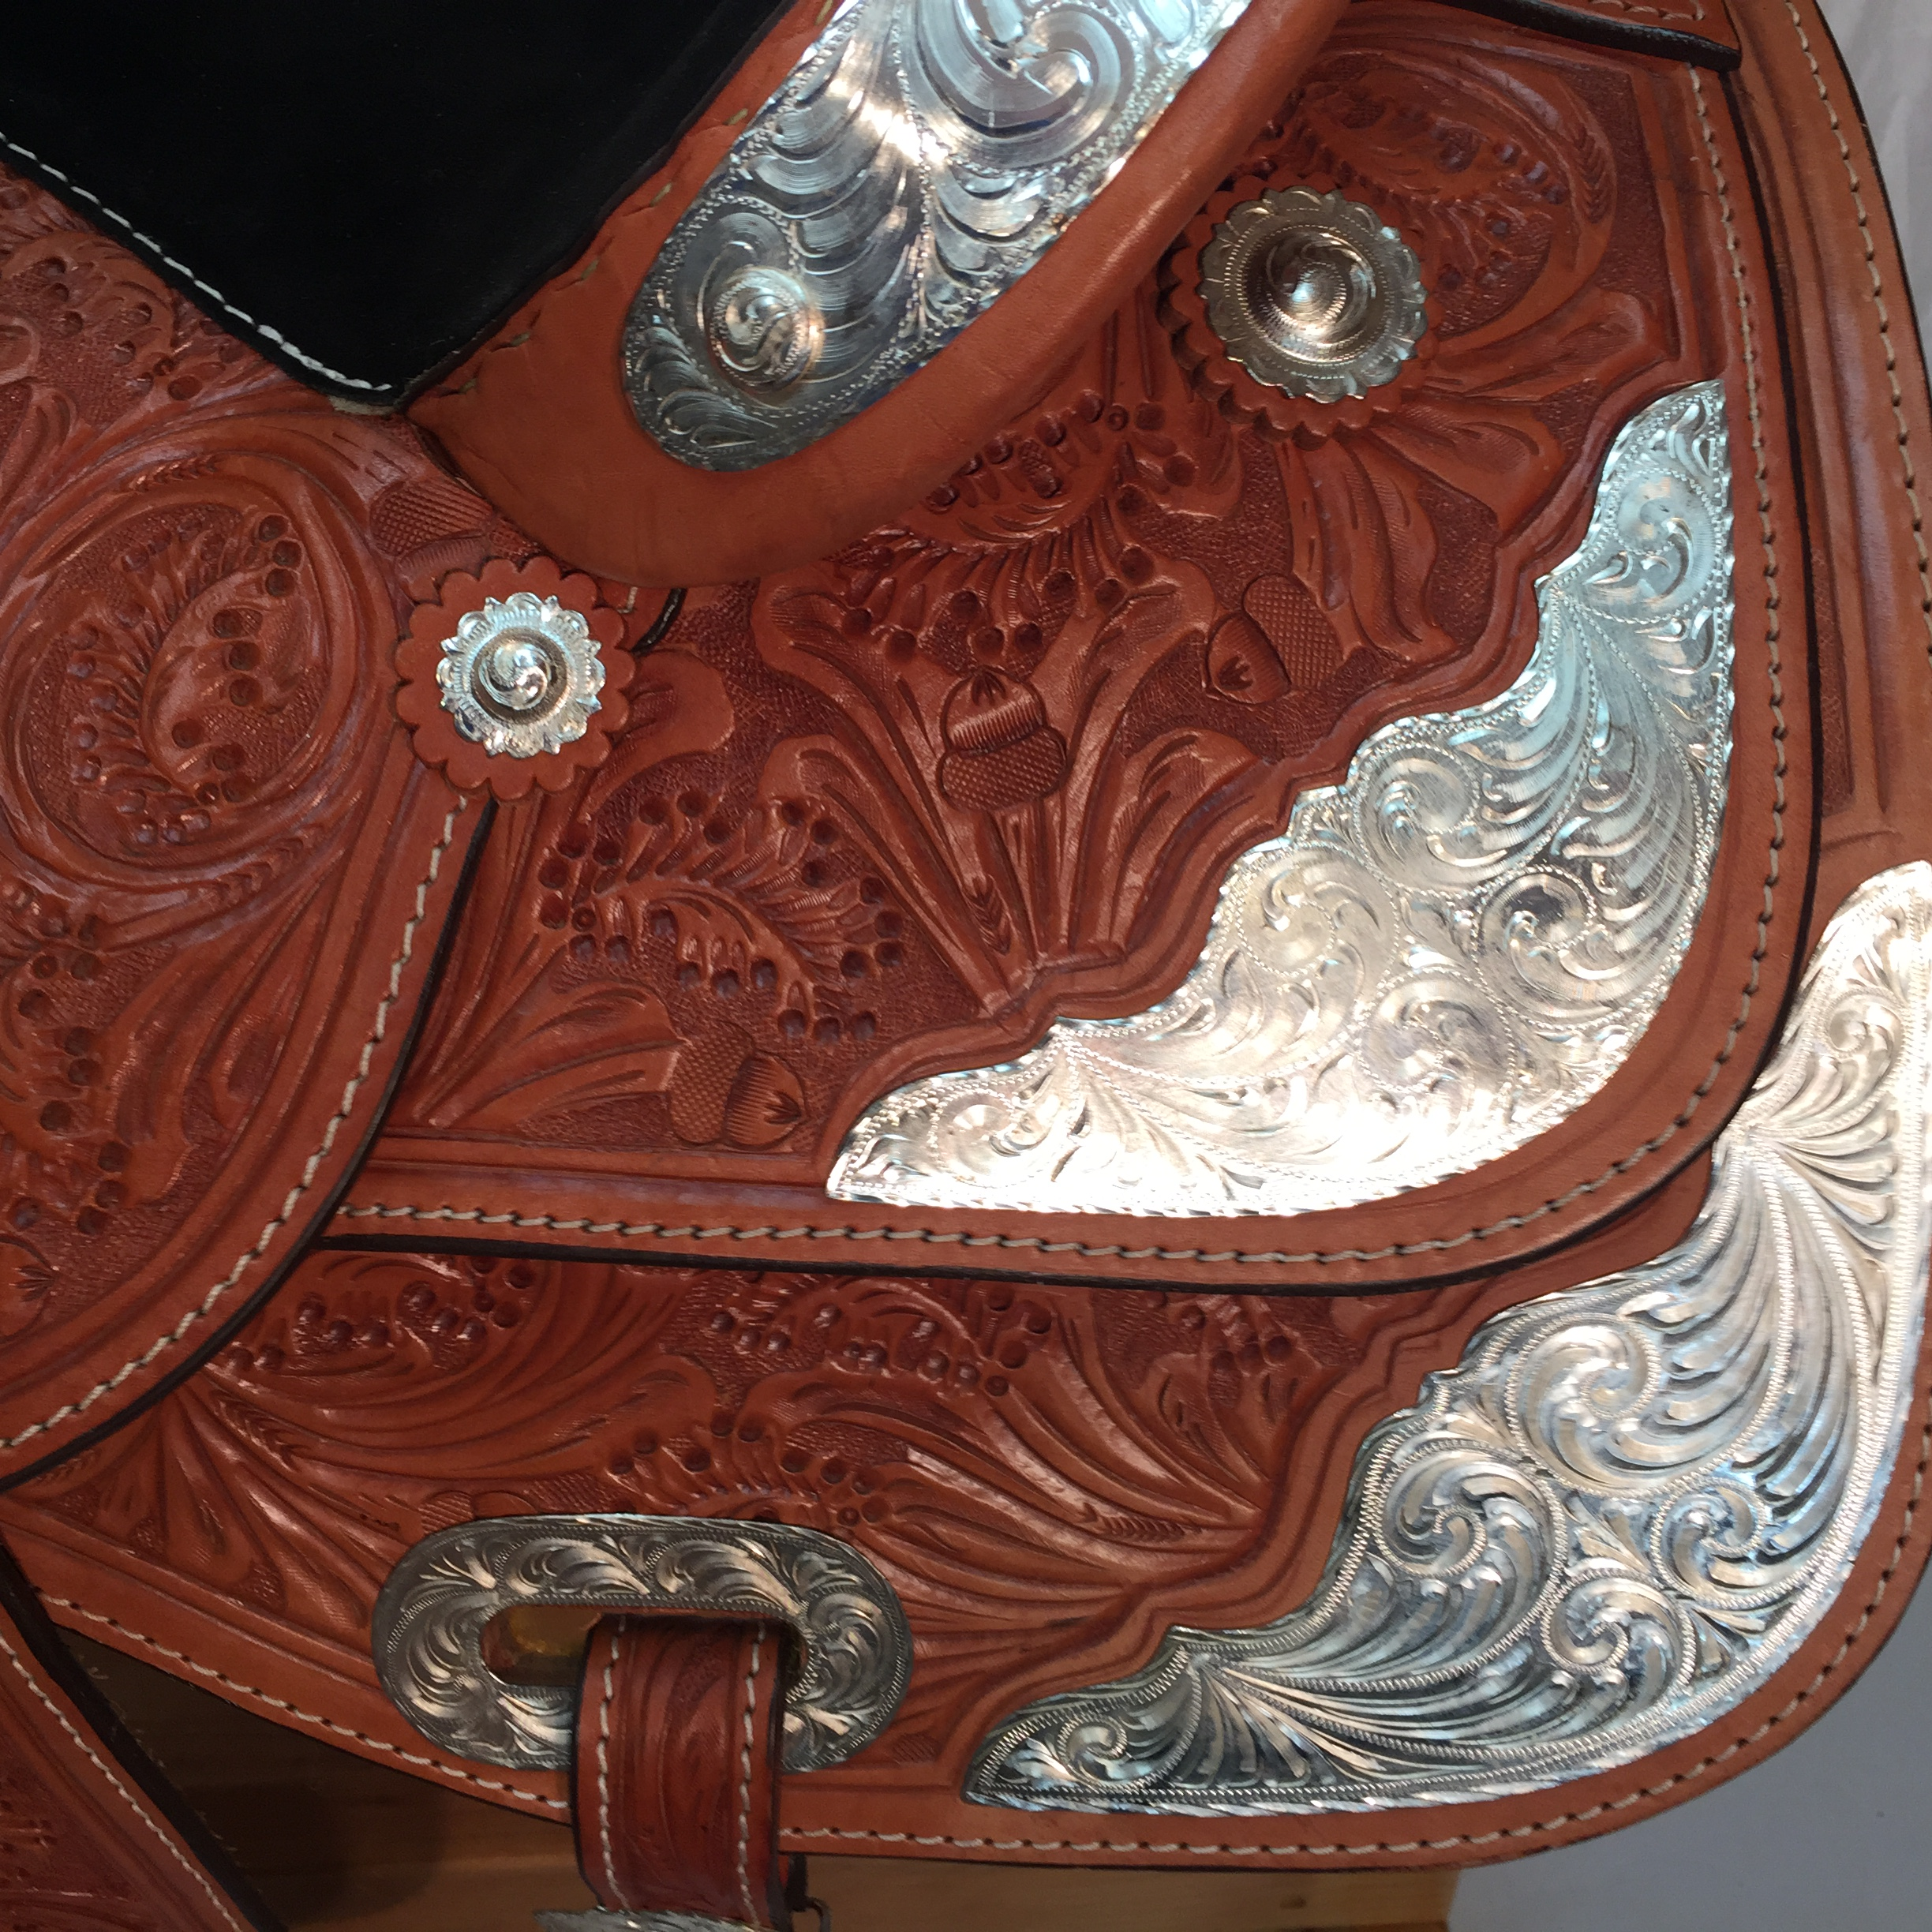 Vickers Classic Show Saddle 53